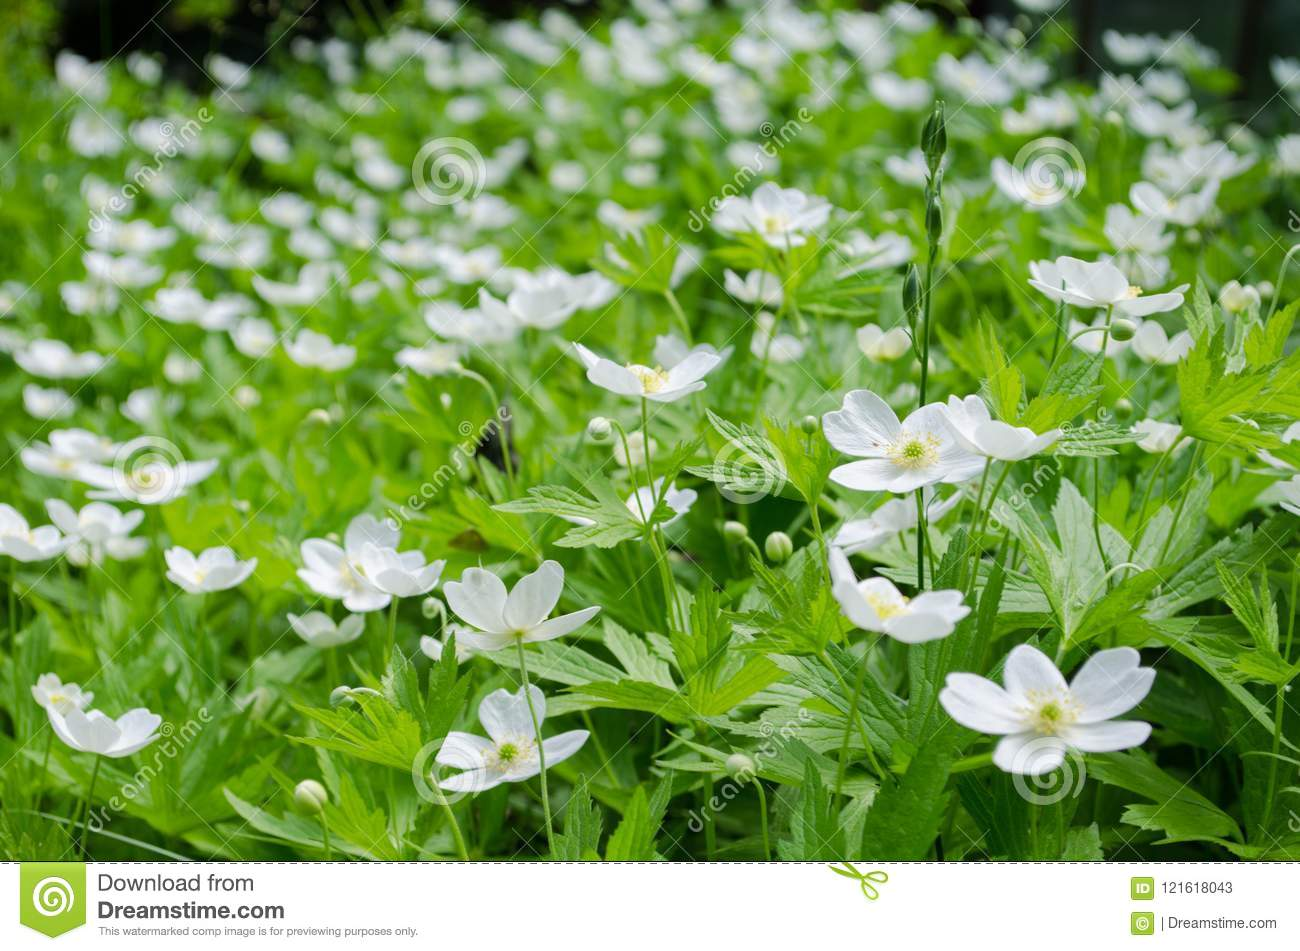 White meadow flowers stock image image of field garden 121618043 download white meadow flowers stock image image of field garden 121618043 mightylinksfo